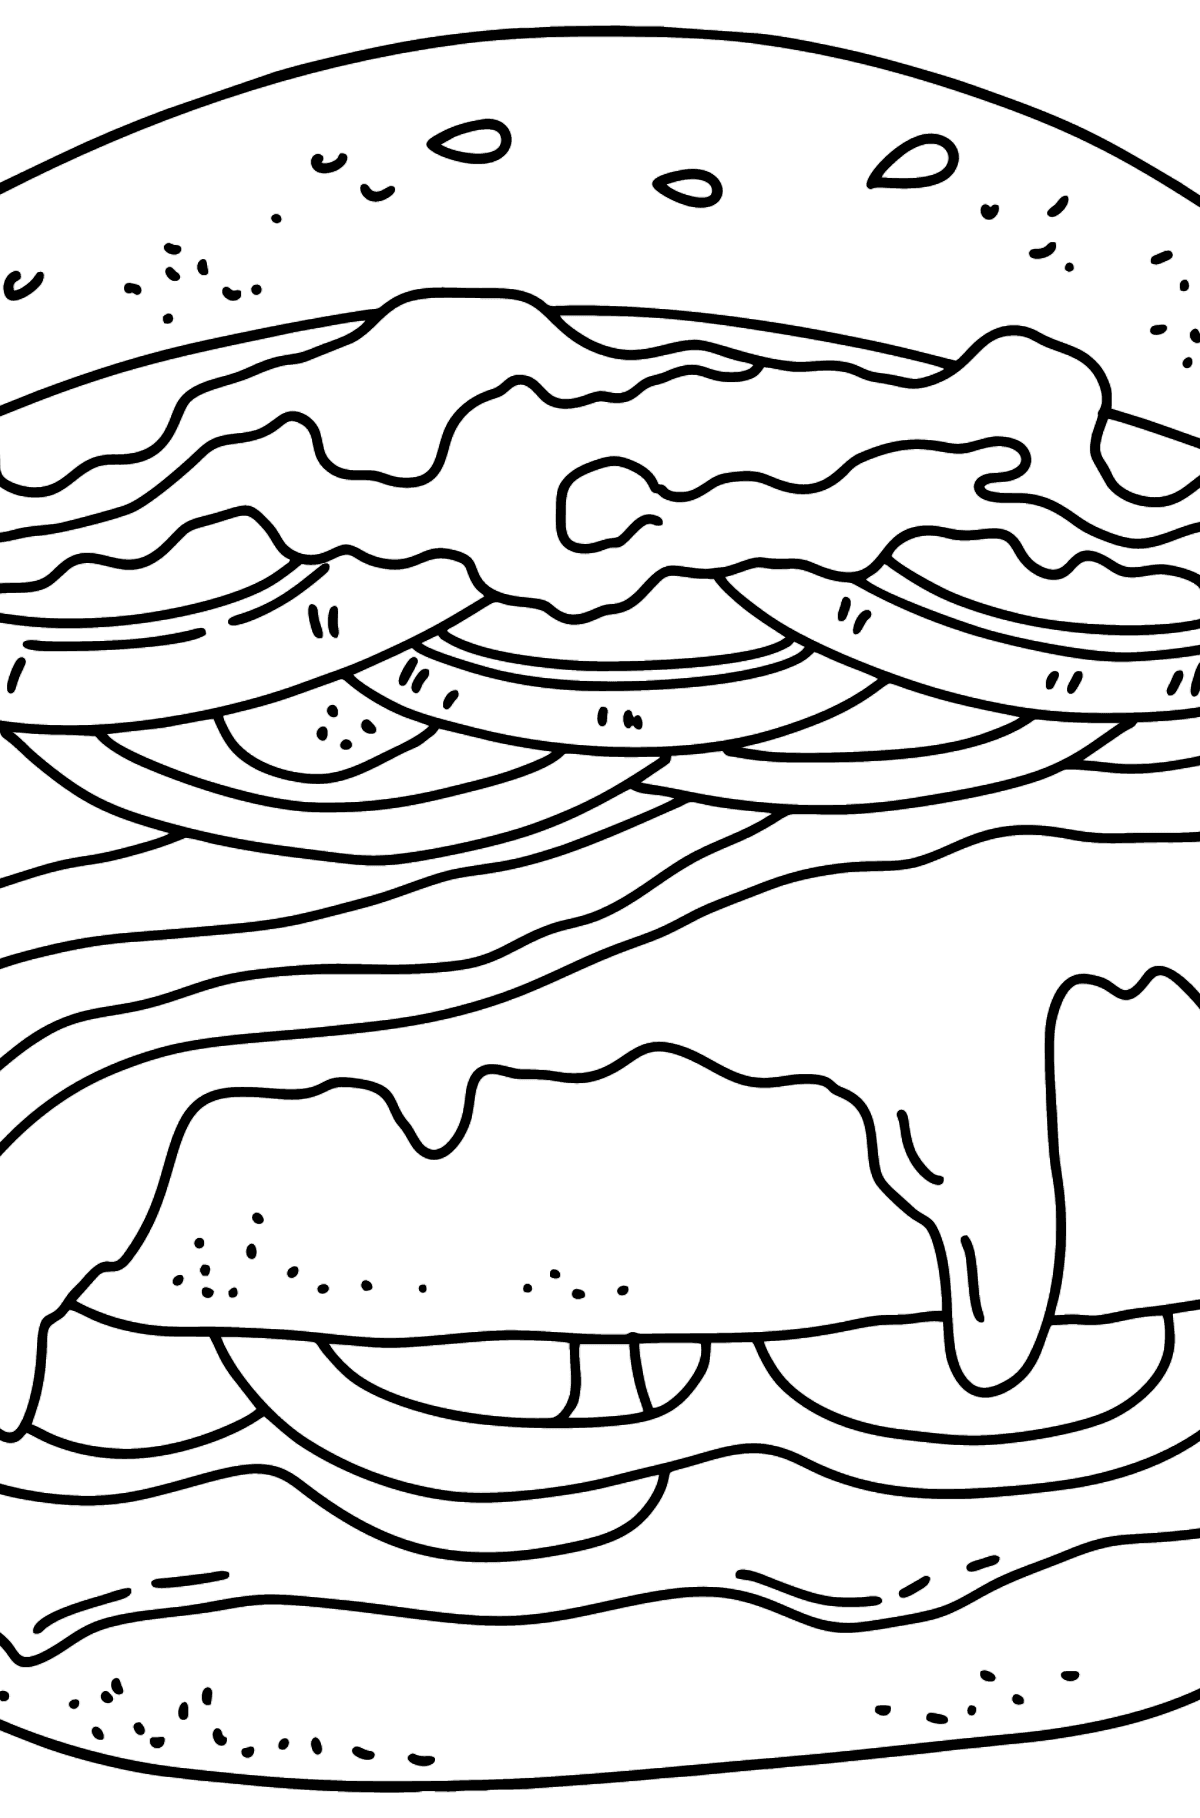 Delicious Hamburger coloring page - Coloring Pages for Kids